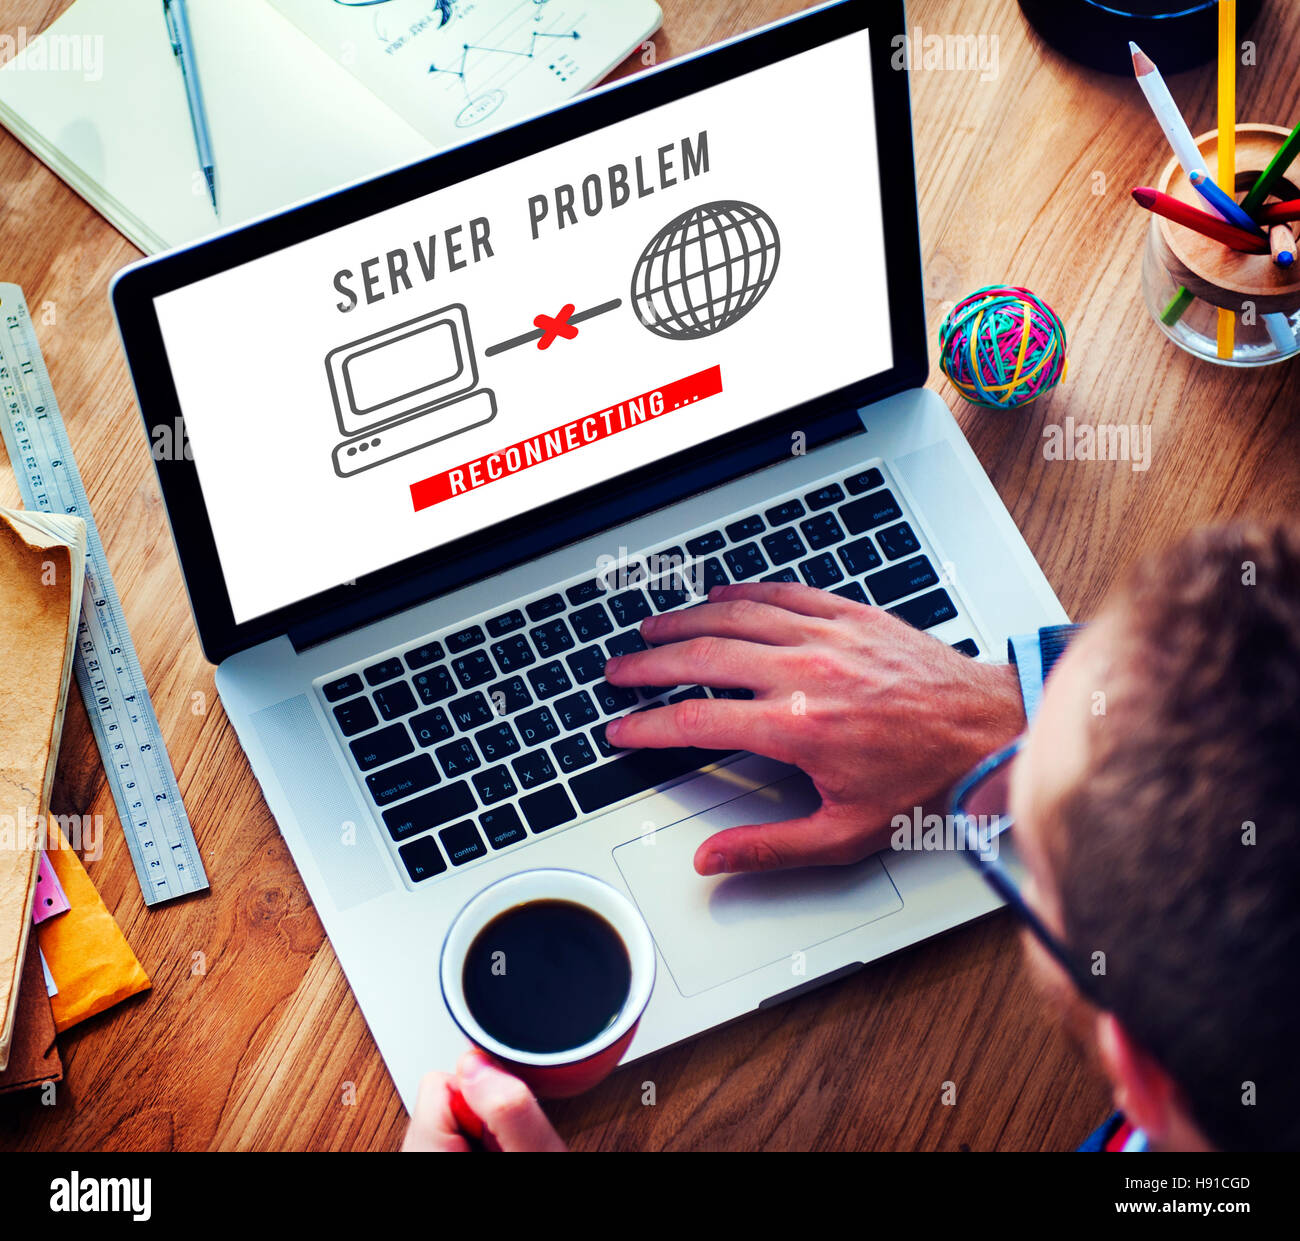 Server Problem Failure Difficulty Complication Concept - Stock Image